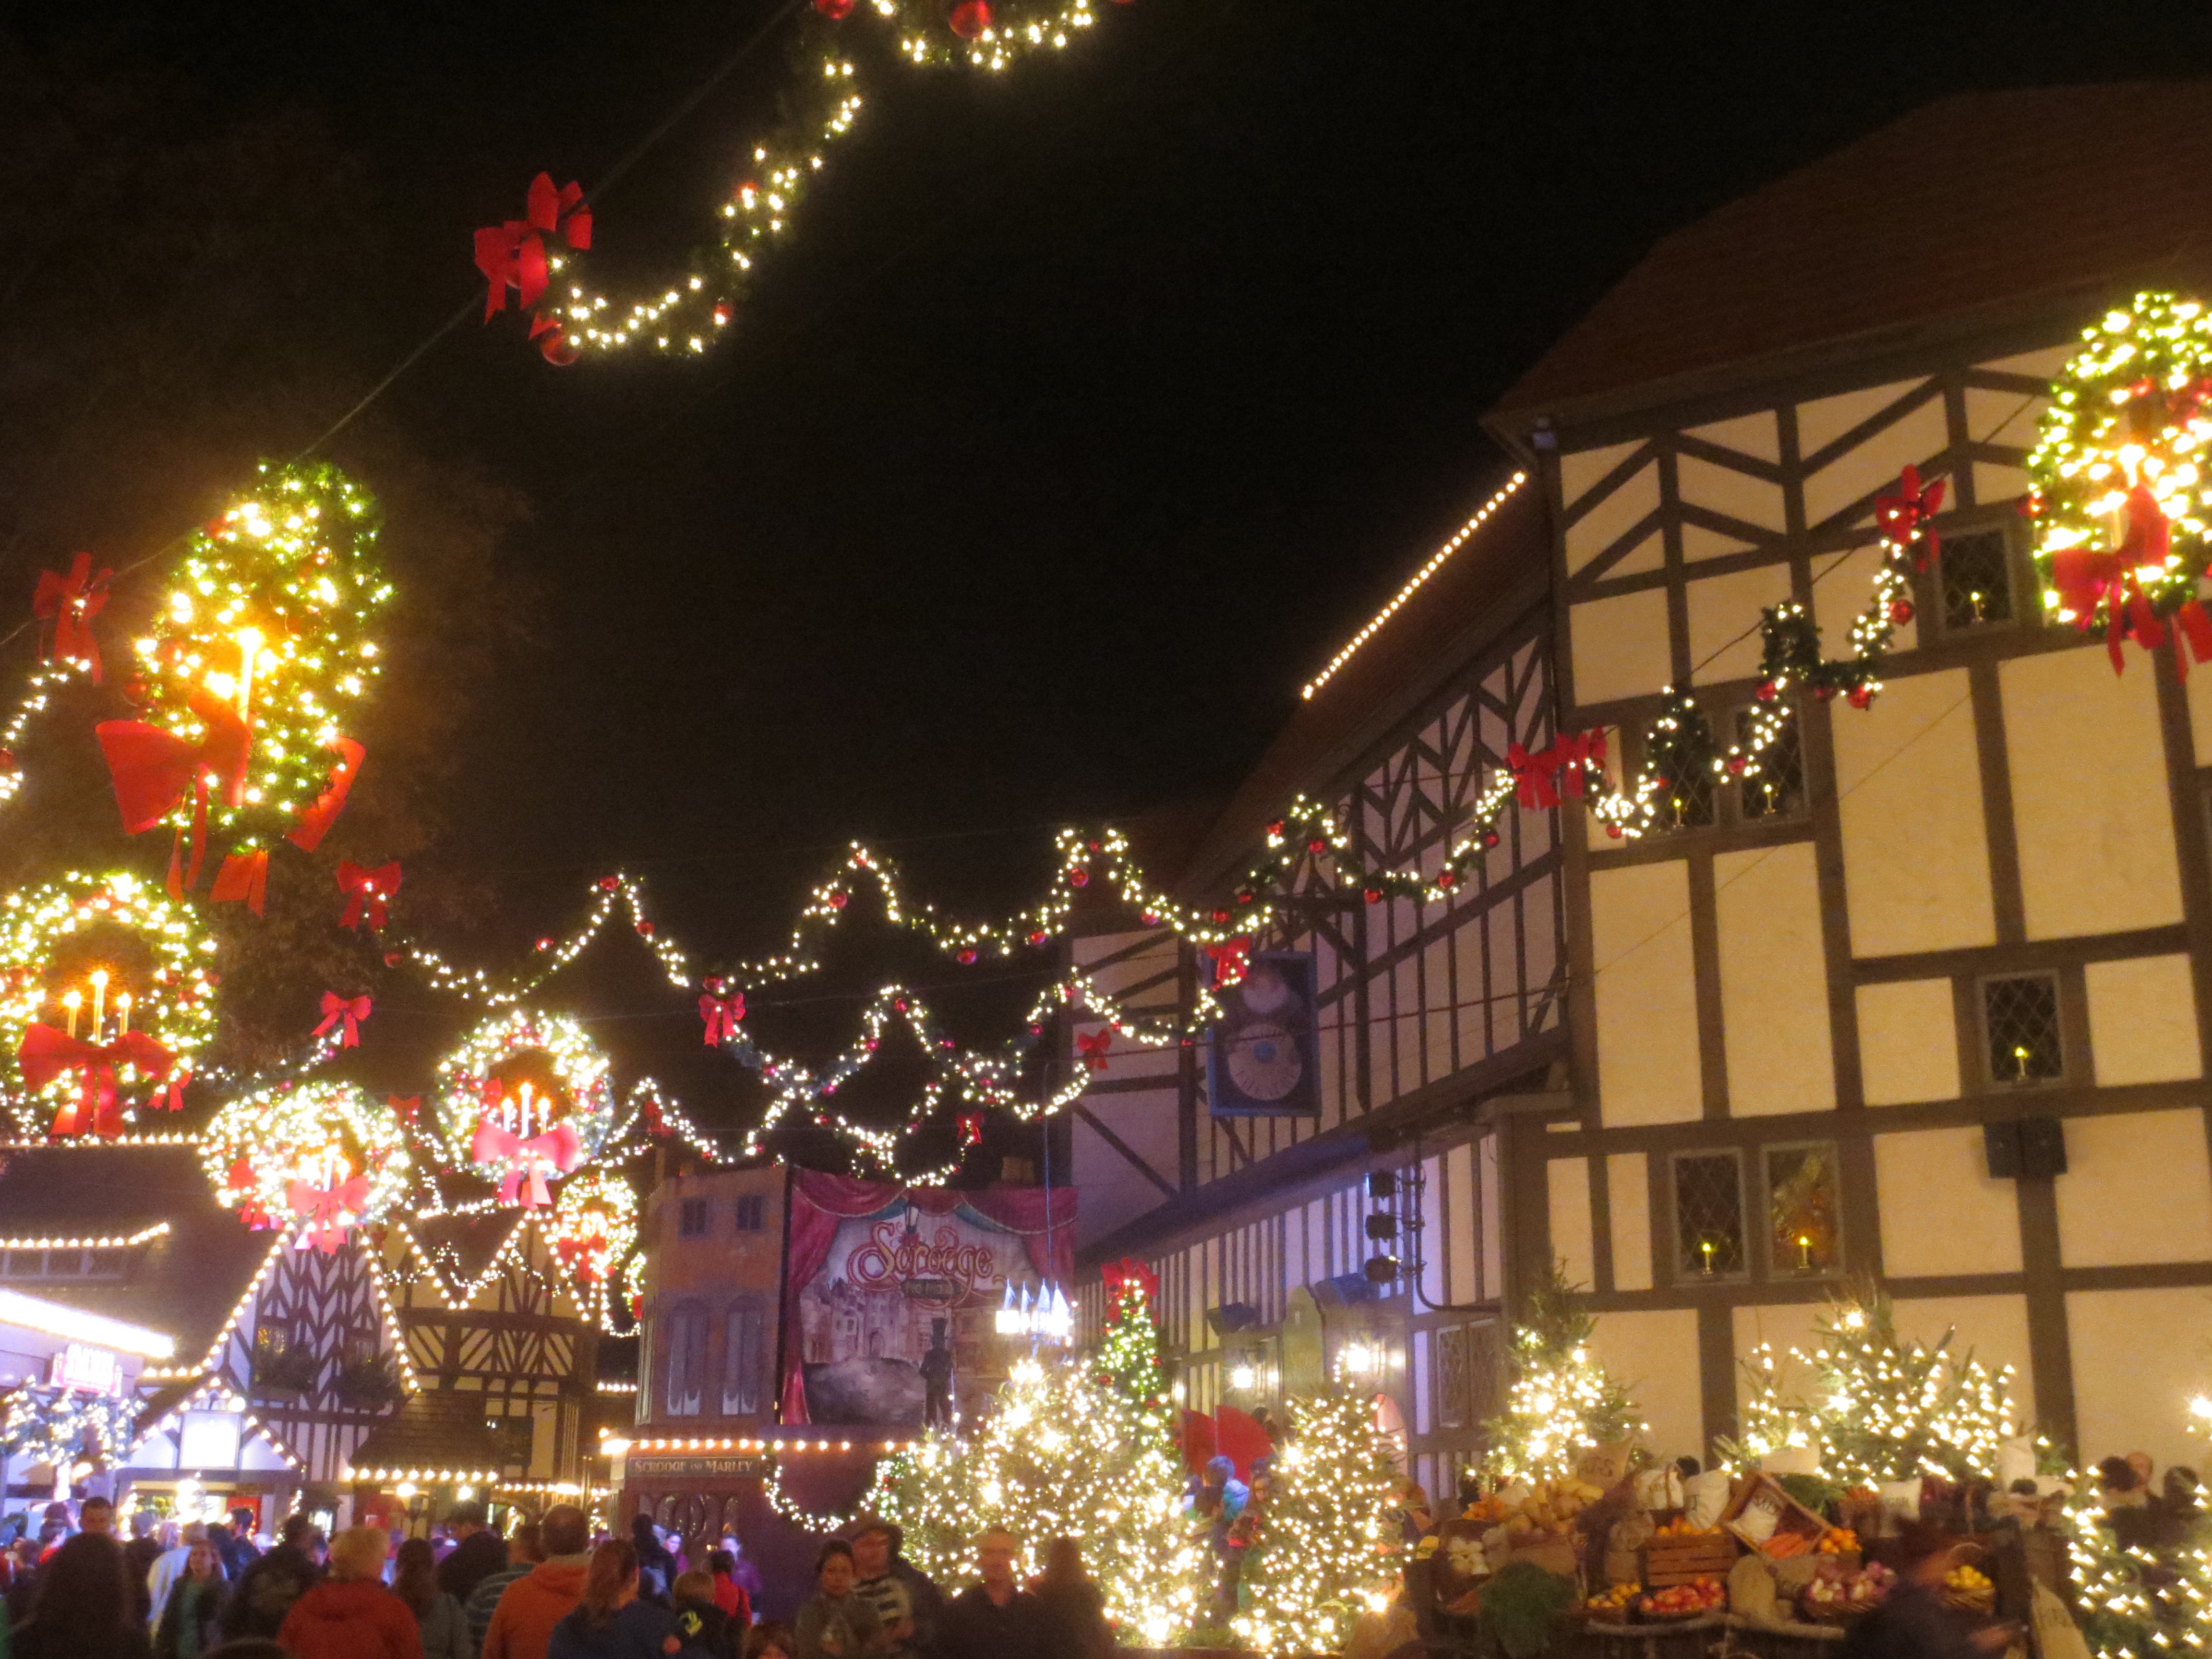 Christmas Town at Busch Gardens Williamsburg - THE HE SAID SHE SAID ...